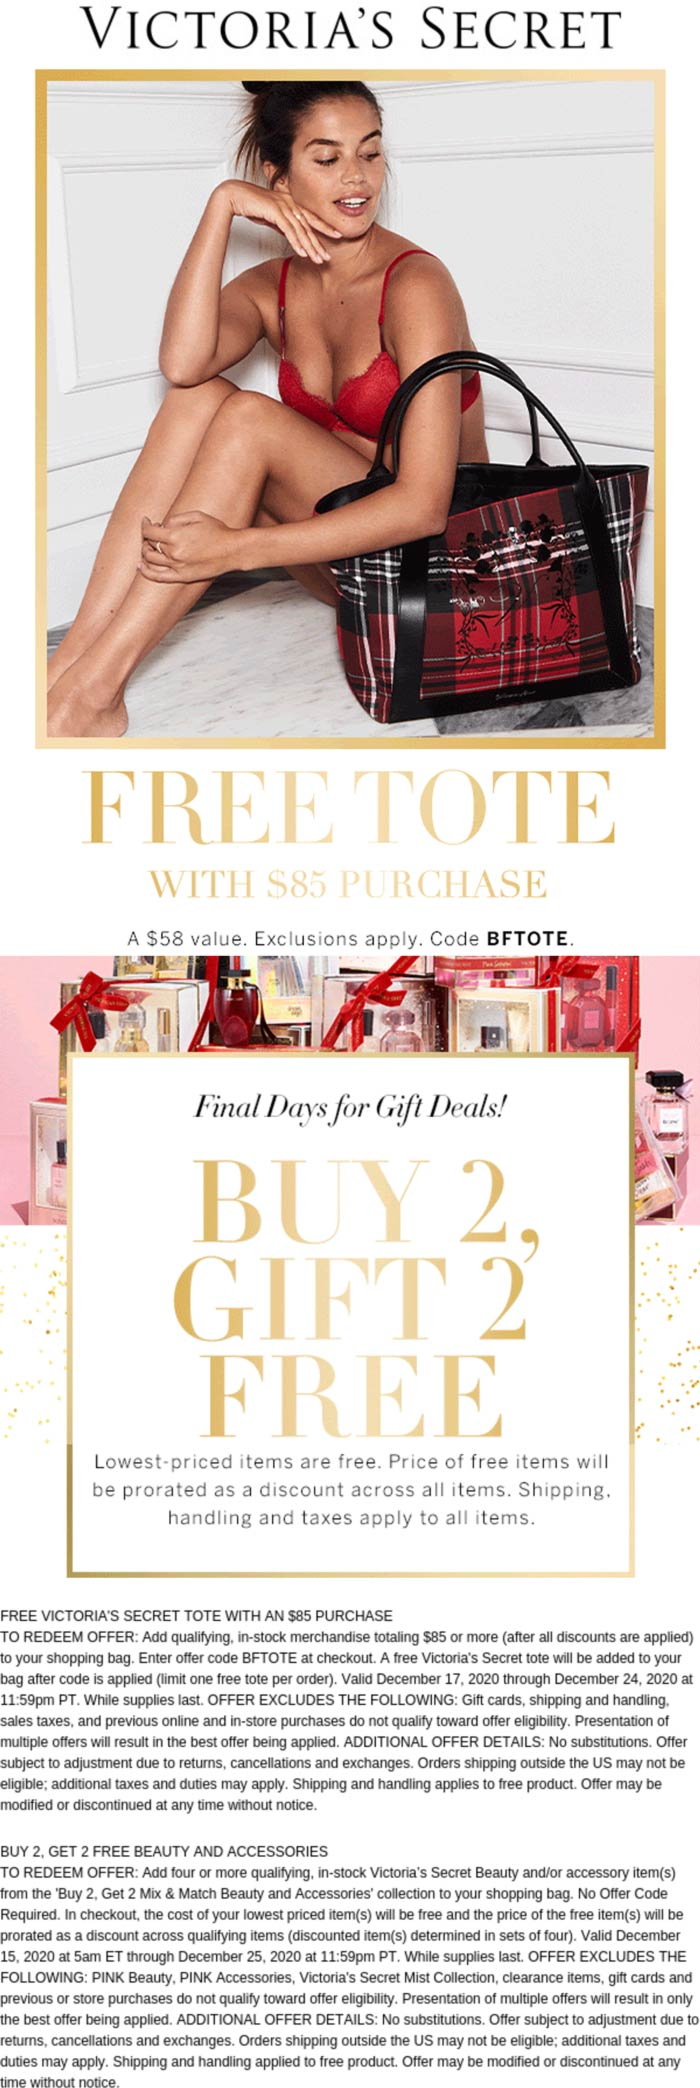 Victorias Secret stores Coupon  Free tote with $85 spent & 4-for-2 on beatuy and accessories at Victorias Secret via promo code BFTOTE #victoriassecret